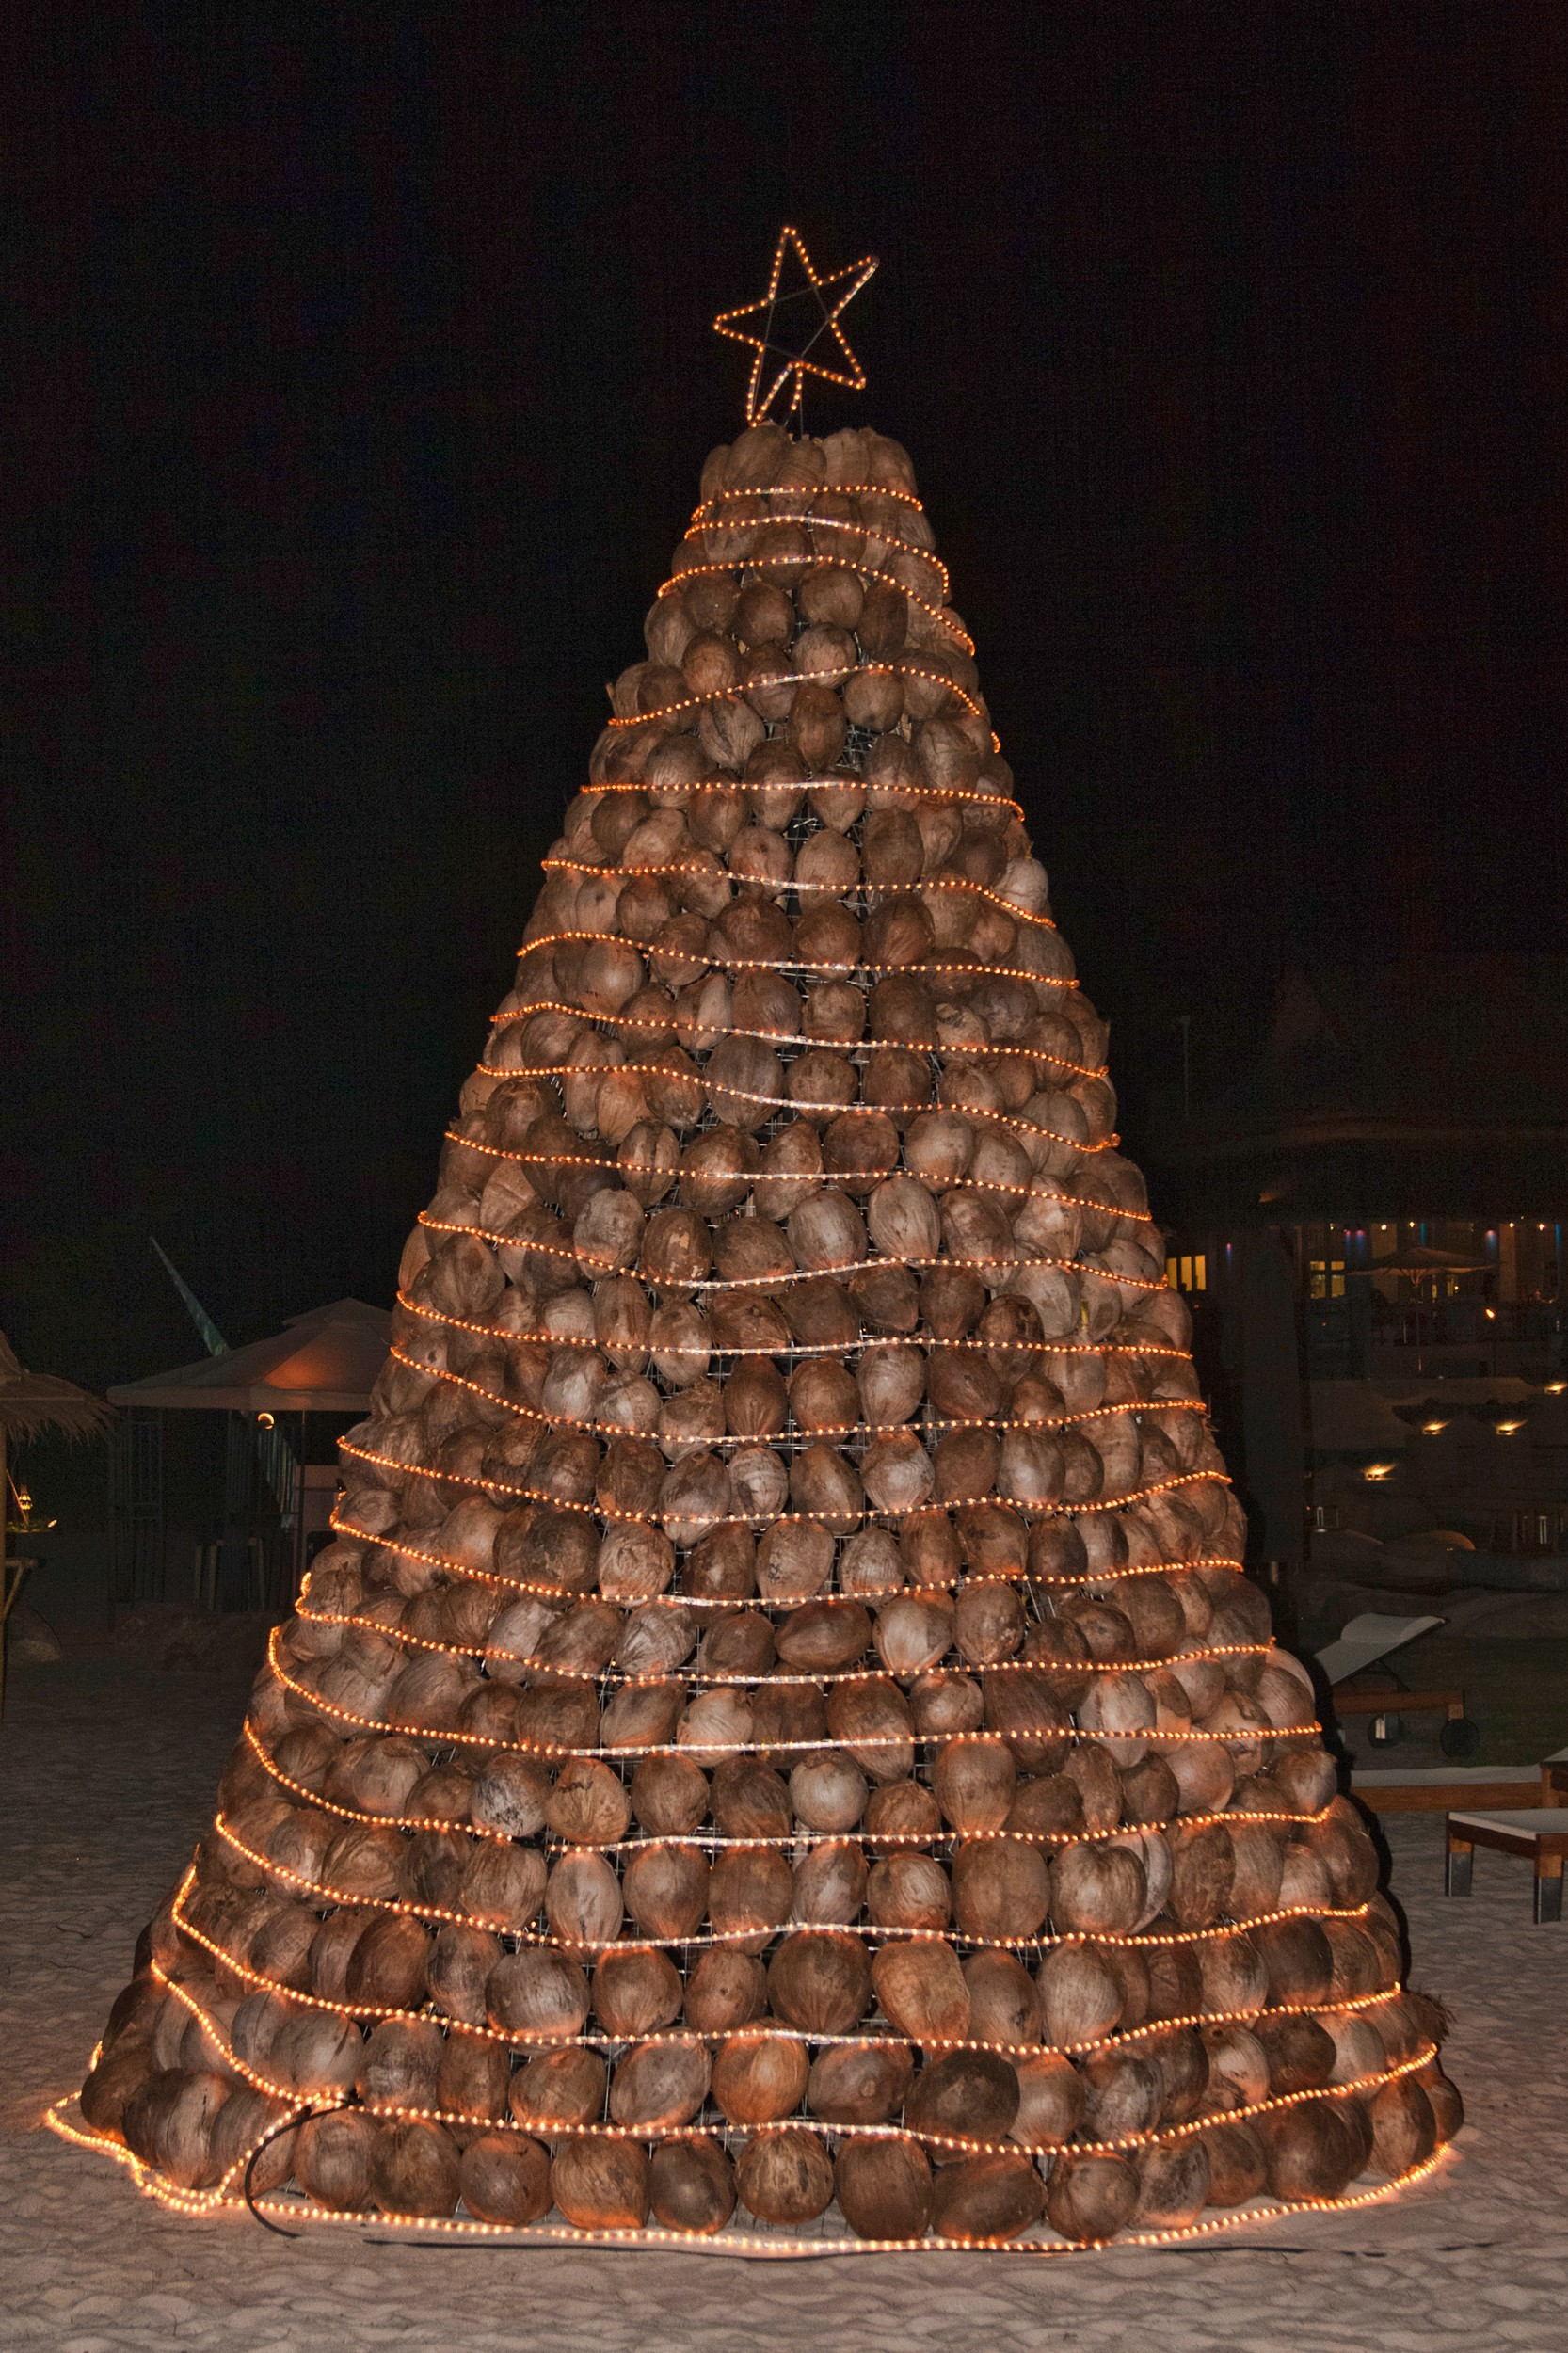 Coconut Christmas tree picture, by friiskiwi for: christmas trees ...